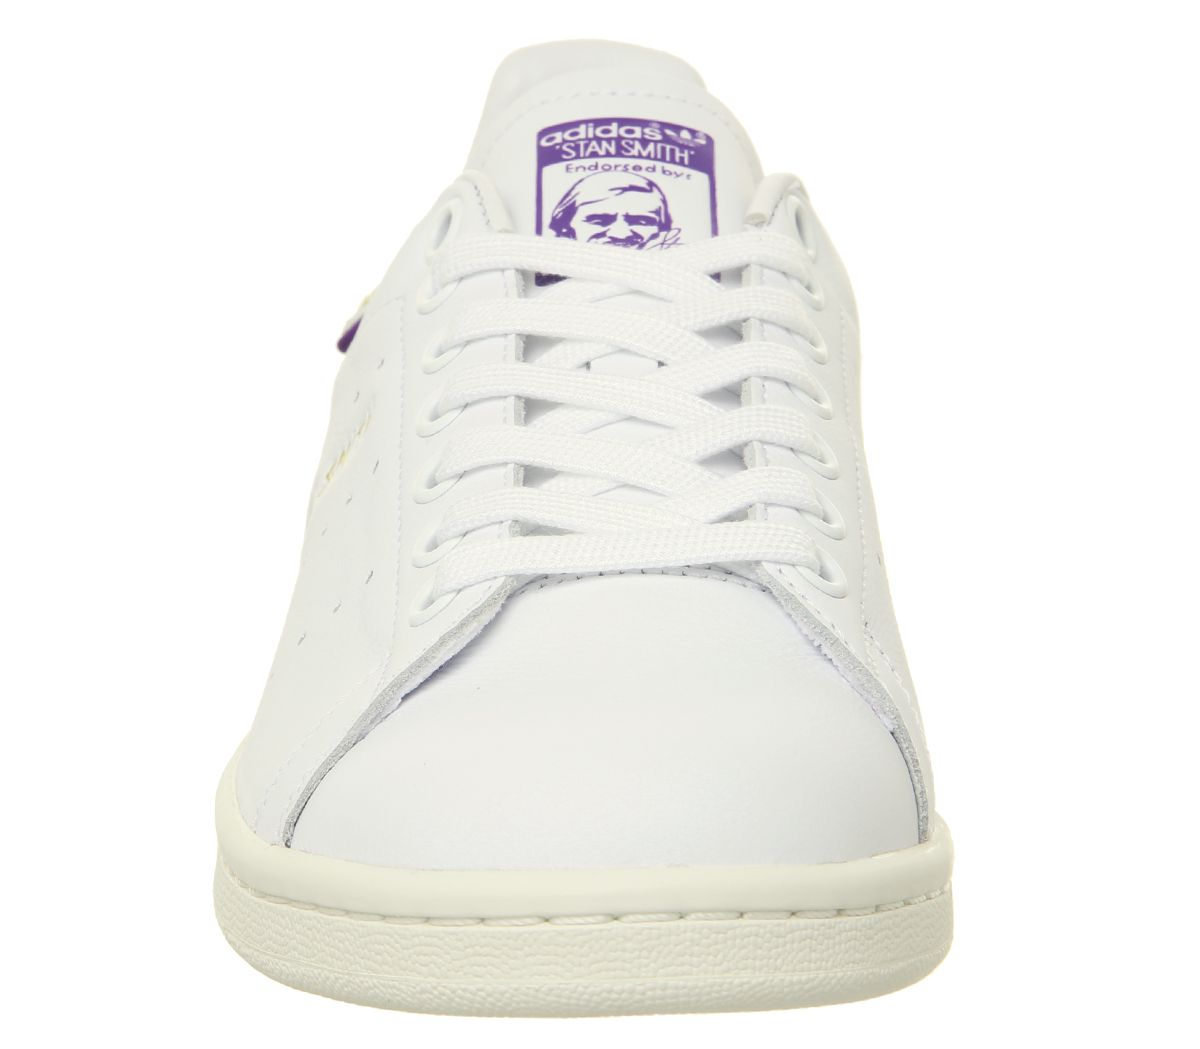 new product 7dbea c1fff Sentinel Womens Adidas Stan Smith Trainers Off White Purple Gold Metallic  Elizbeth Tfl Tr